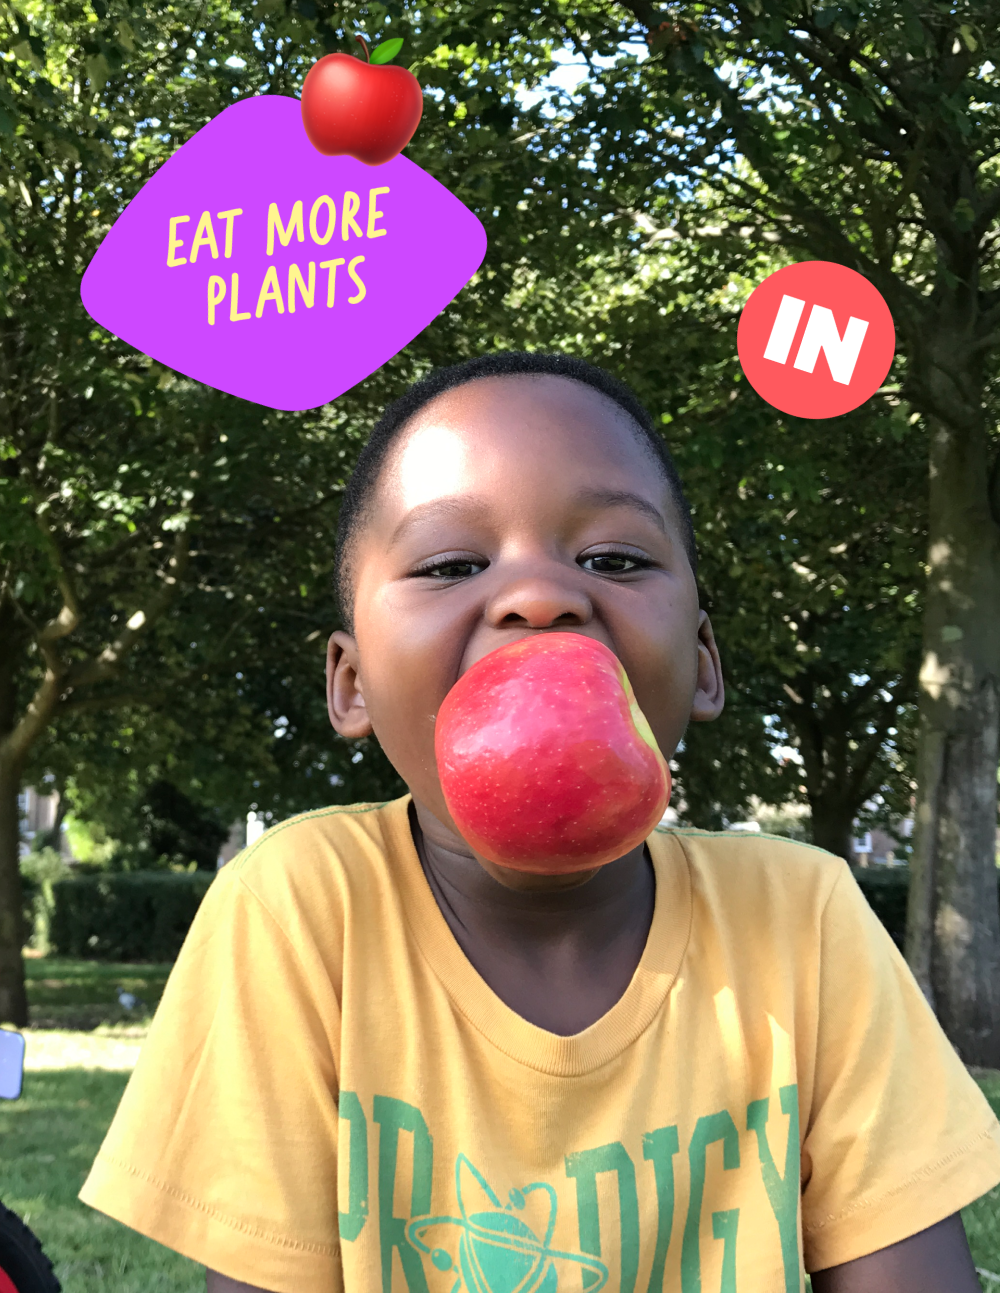 Child eating and apple